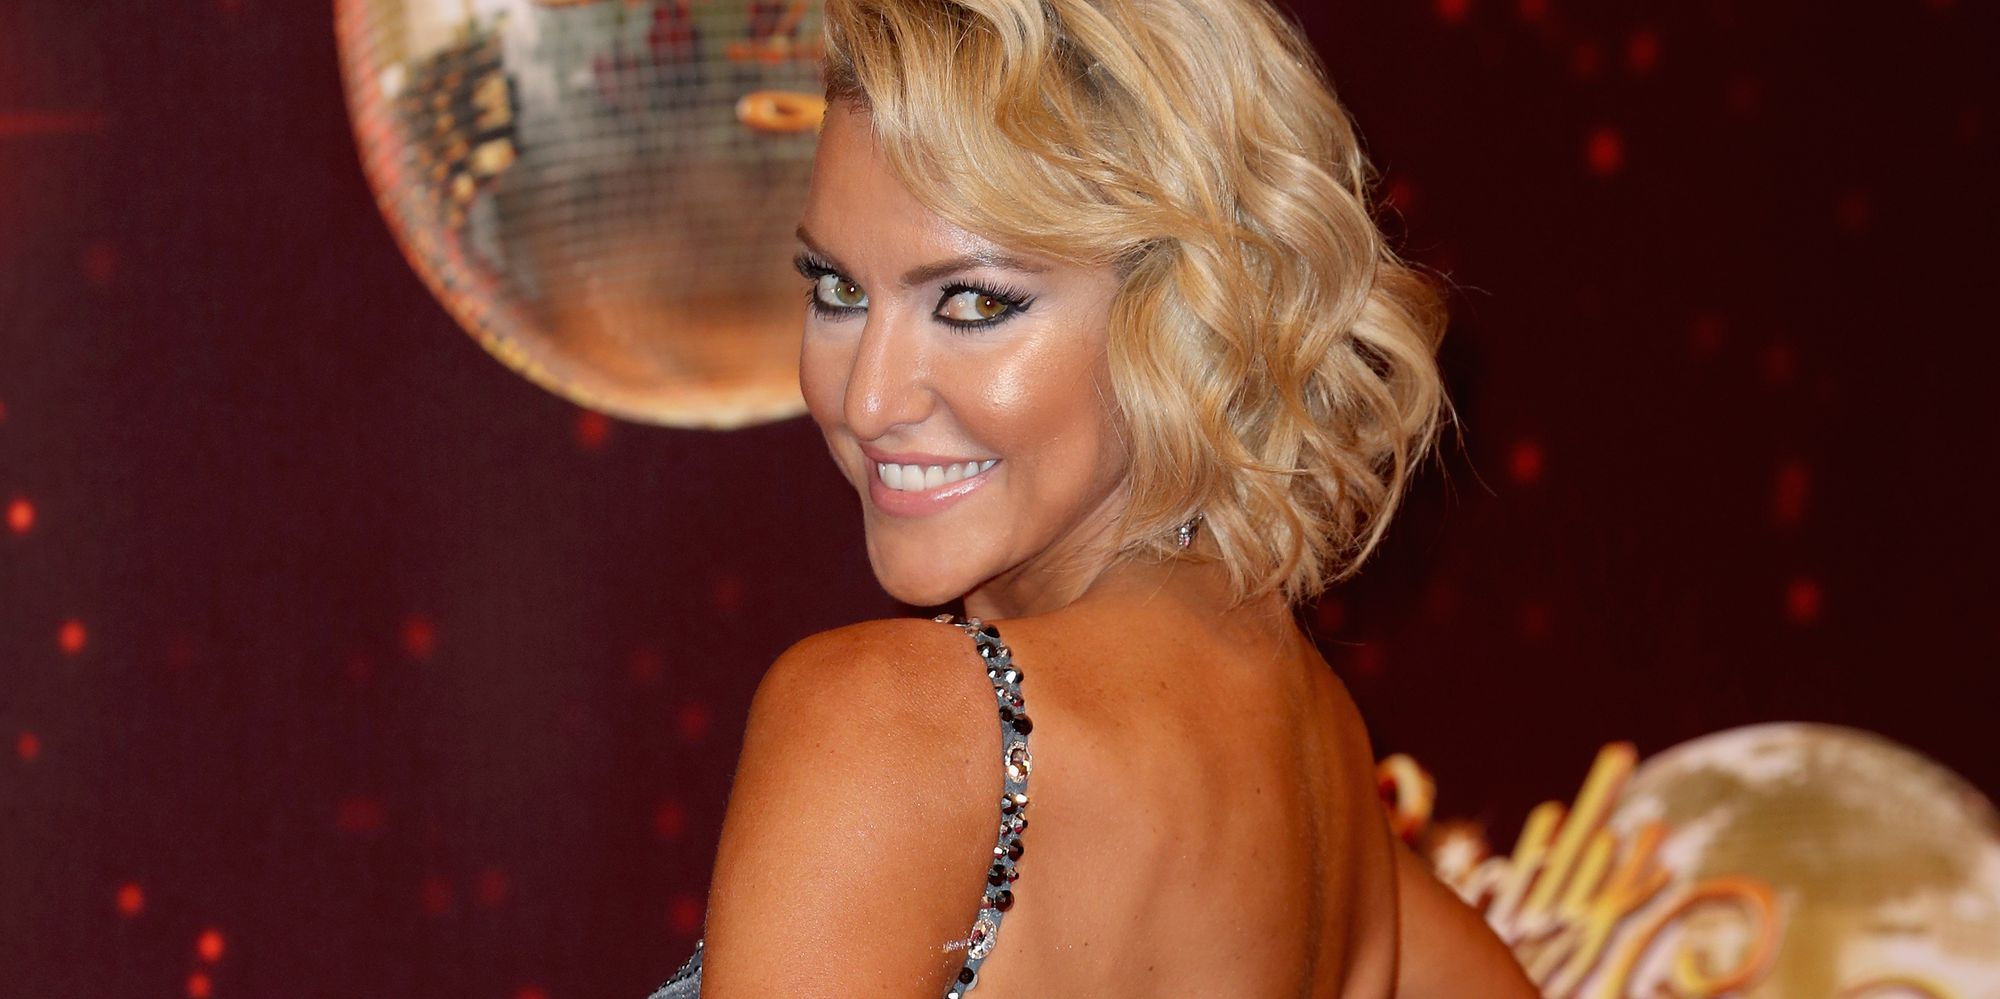 Strictly Come Dancing's Natalie Lowe Admits Uncertainty Over Decision To Quit